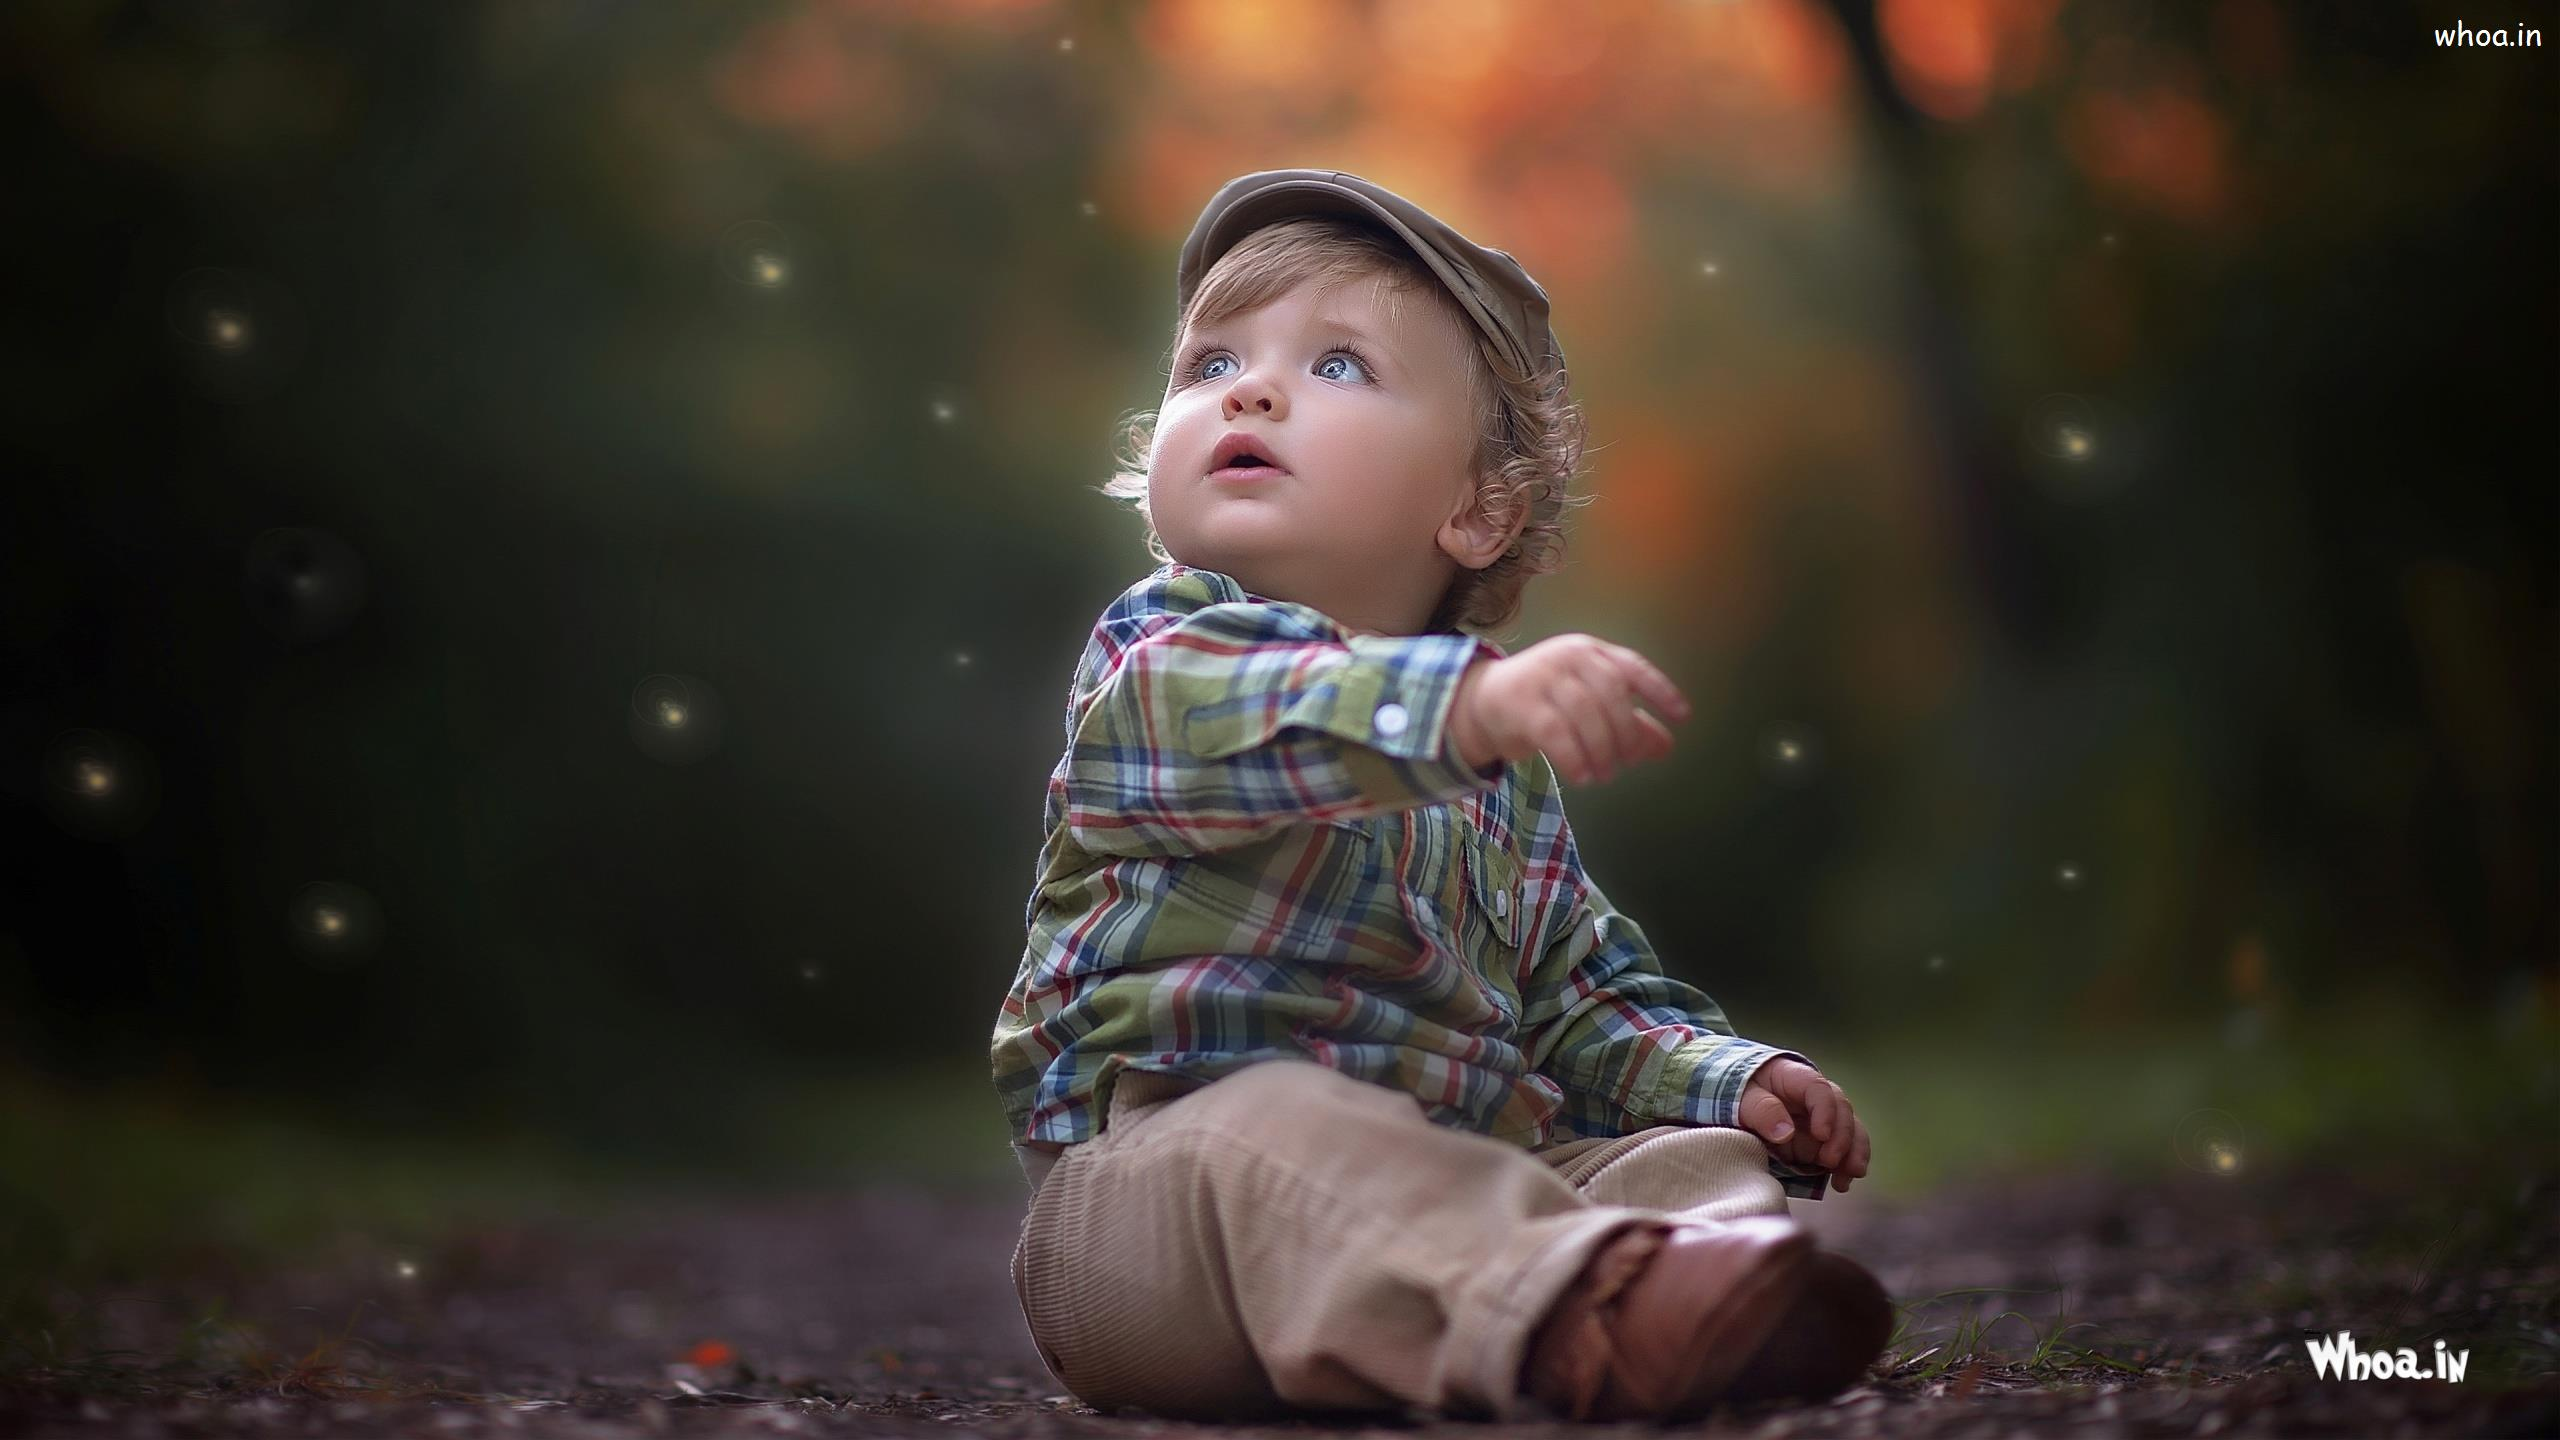 Alone Cute Little Child Hd Wallpaper